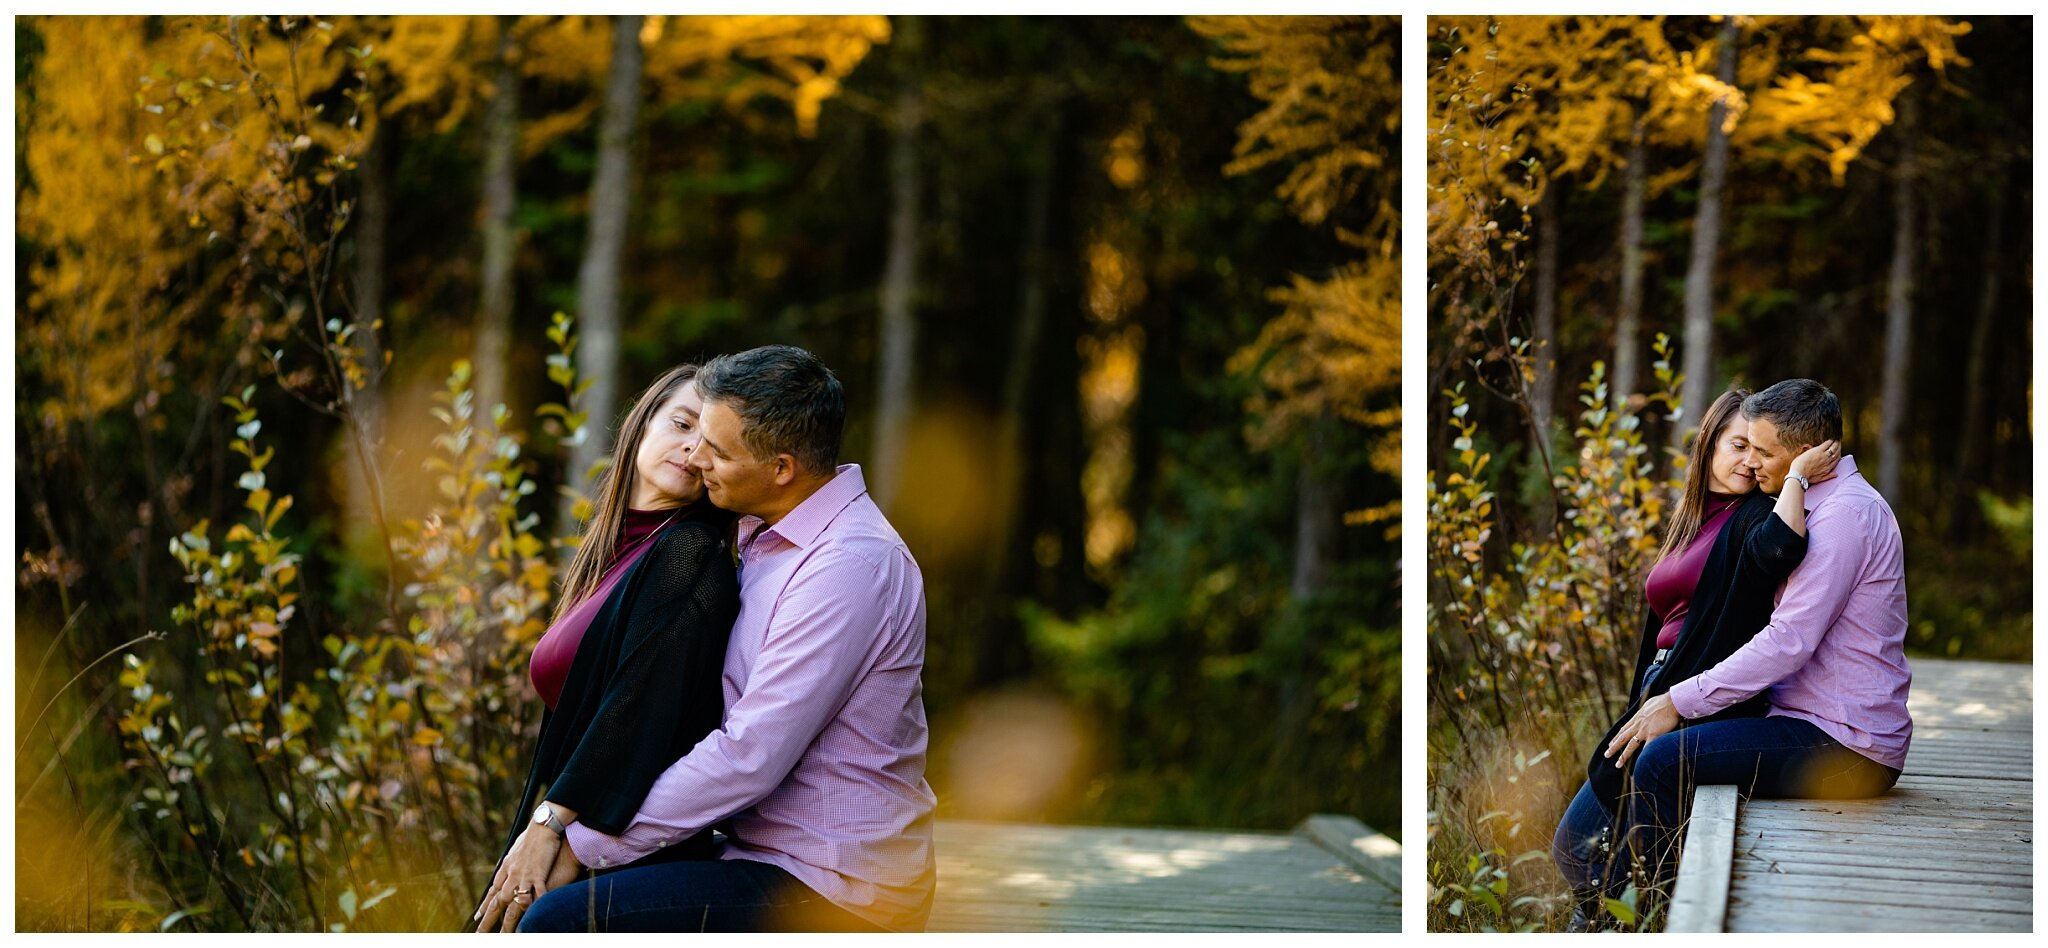 Wagner Natural Area Acheson couples Photographer Alberta  engagement older couple romantic fall photos_0014.jpg